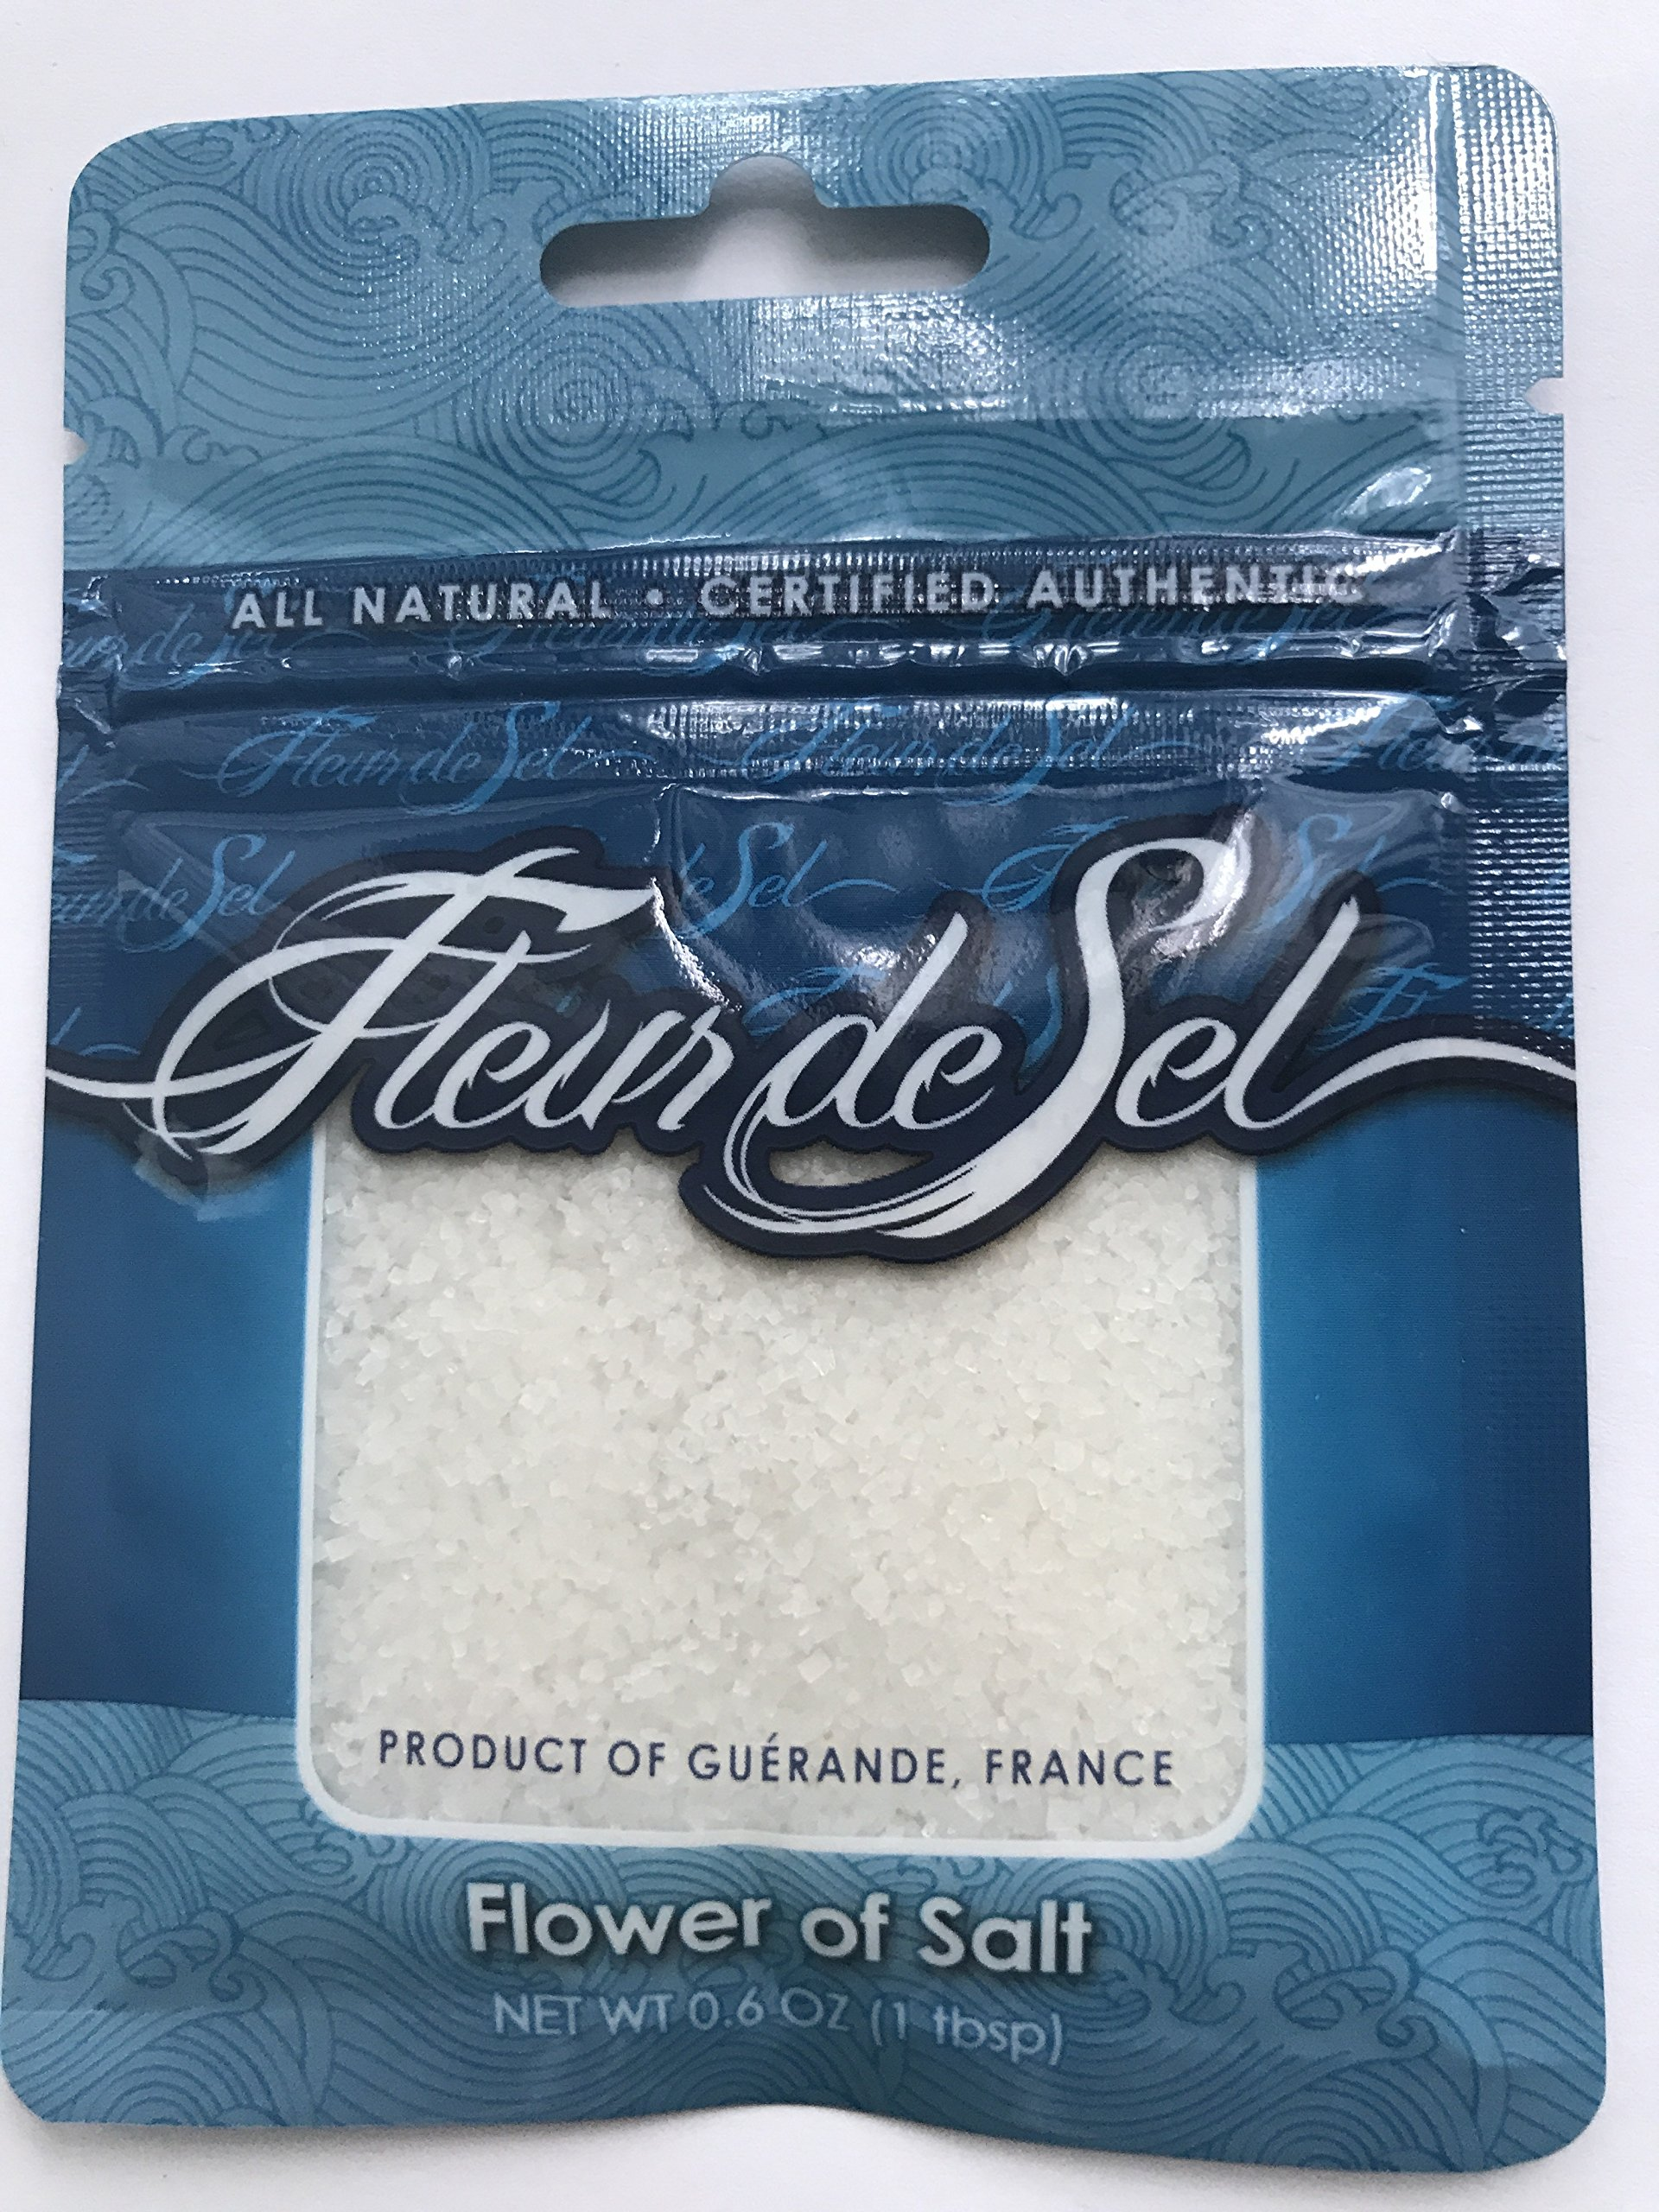 SALTS OF THE WORLD COLLECTION Six-Pack Salt Collection-KOSHER CERTIFIED by 0.6 oz each pouch.